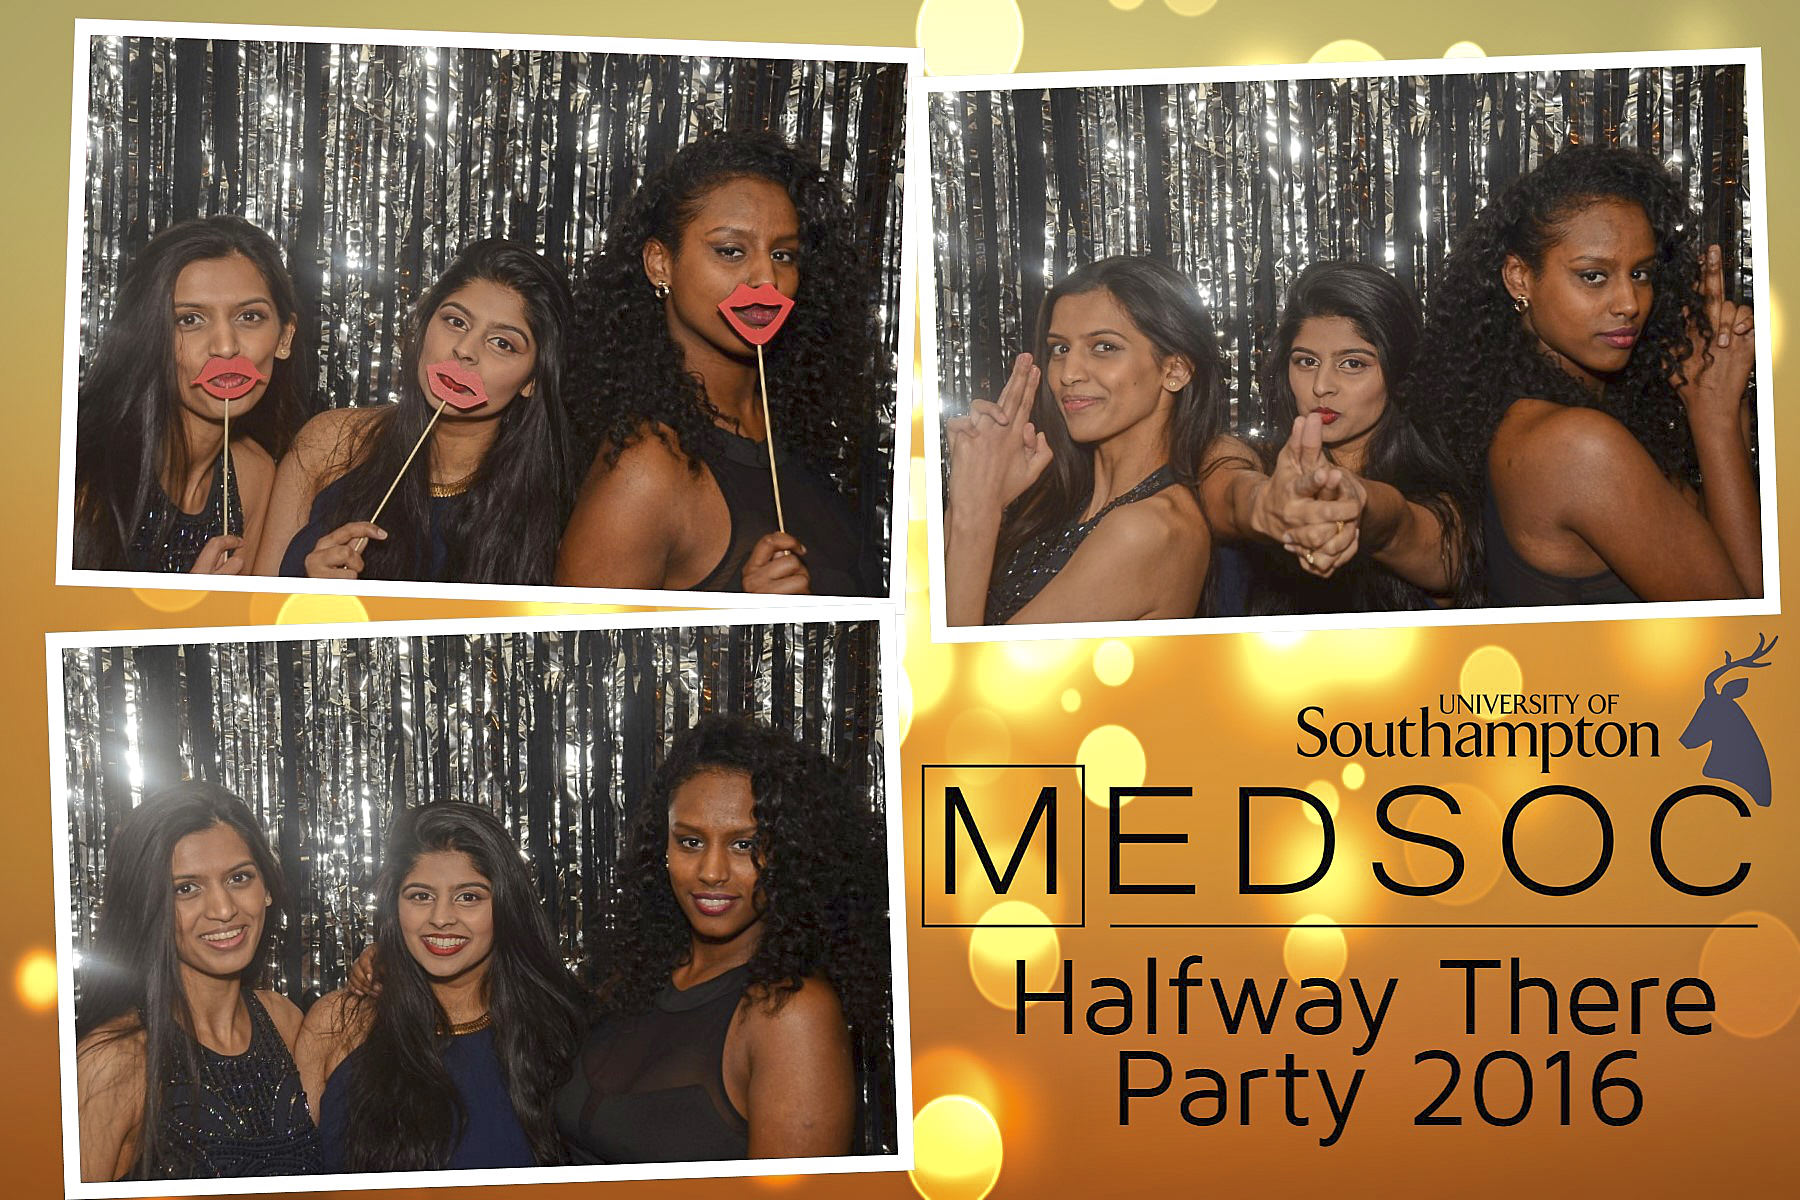 MedSoc Halfway There Party 2016 DS212739.jpg